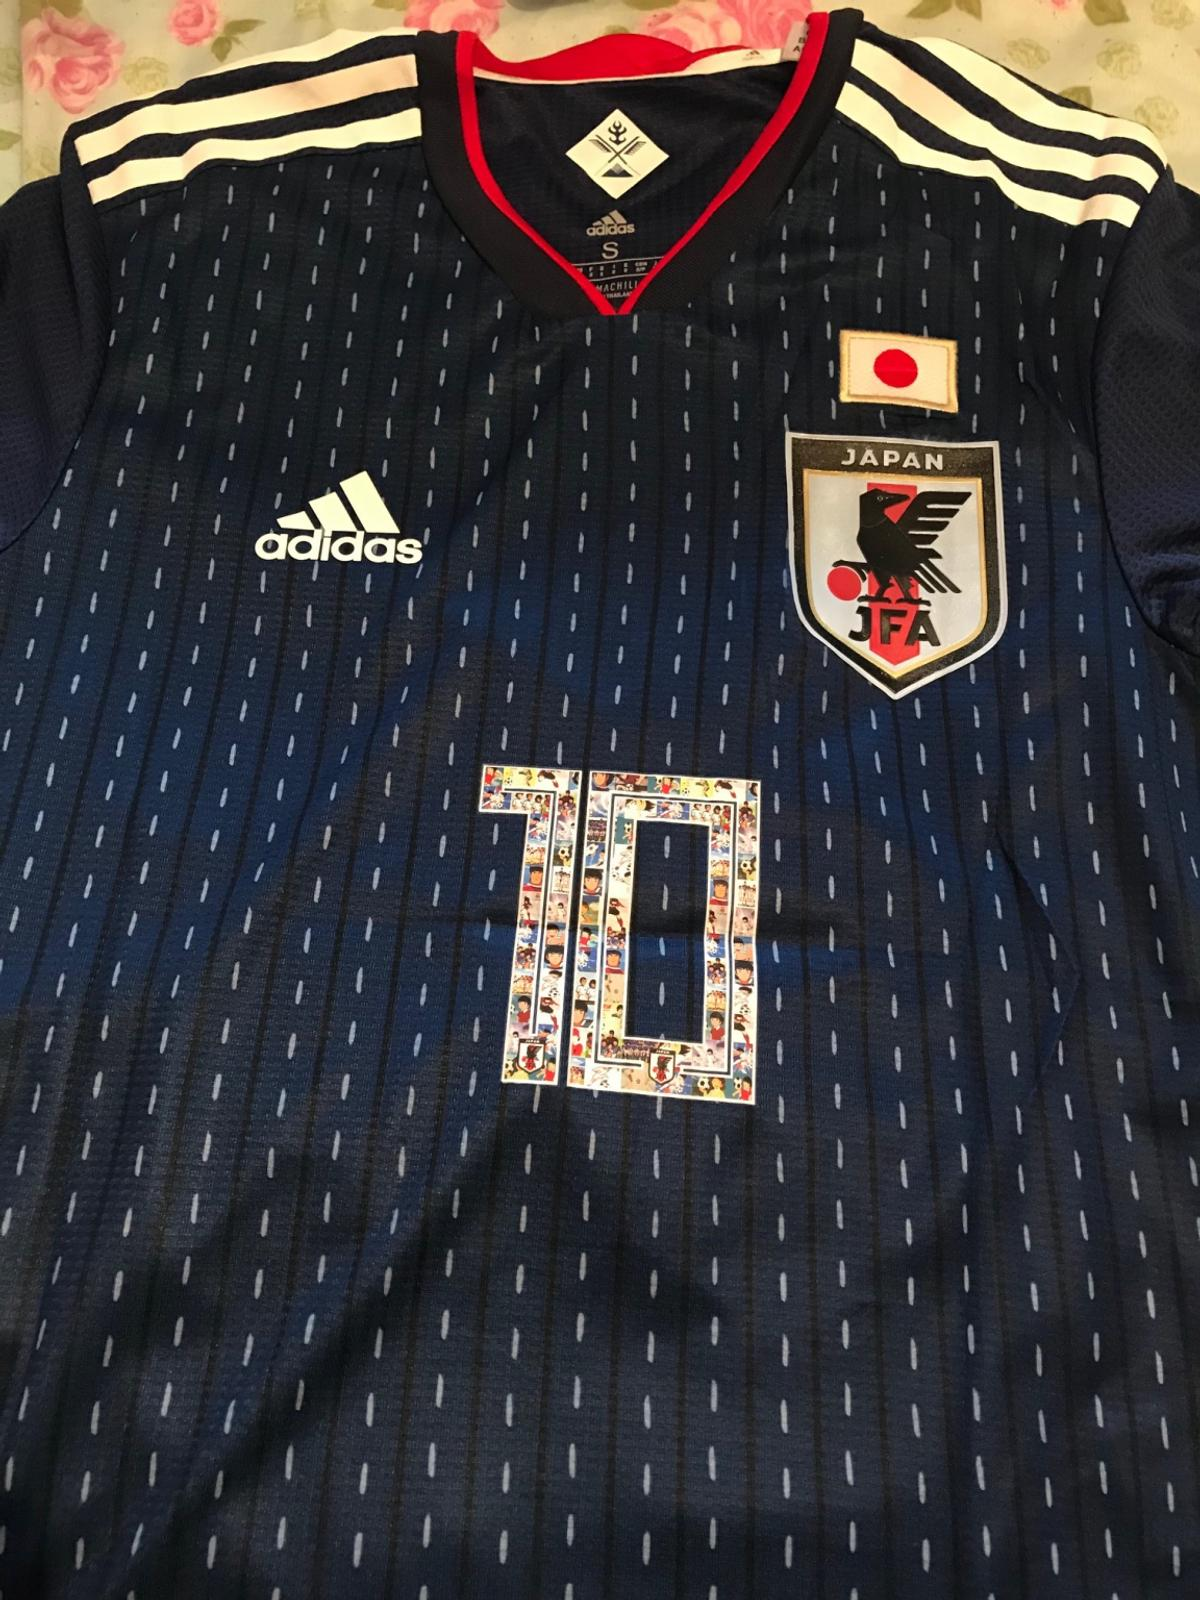 timeless design b98c8 3164e Japan Captain Tsubasa football shirt S NEW in B29 Birmingham ...